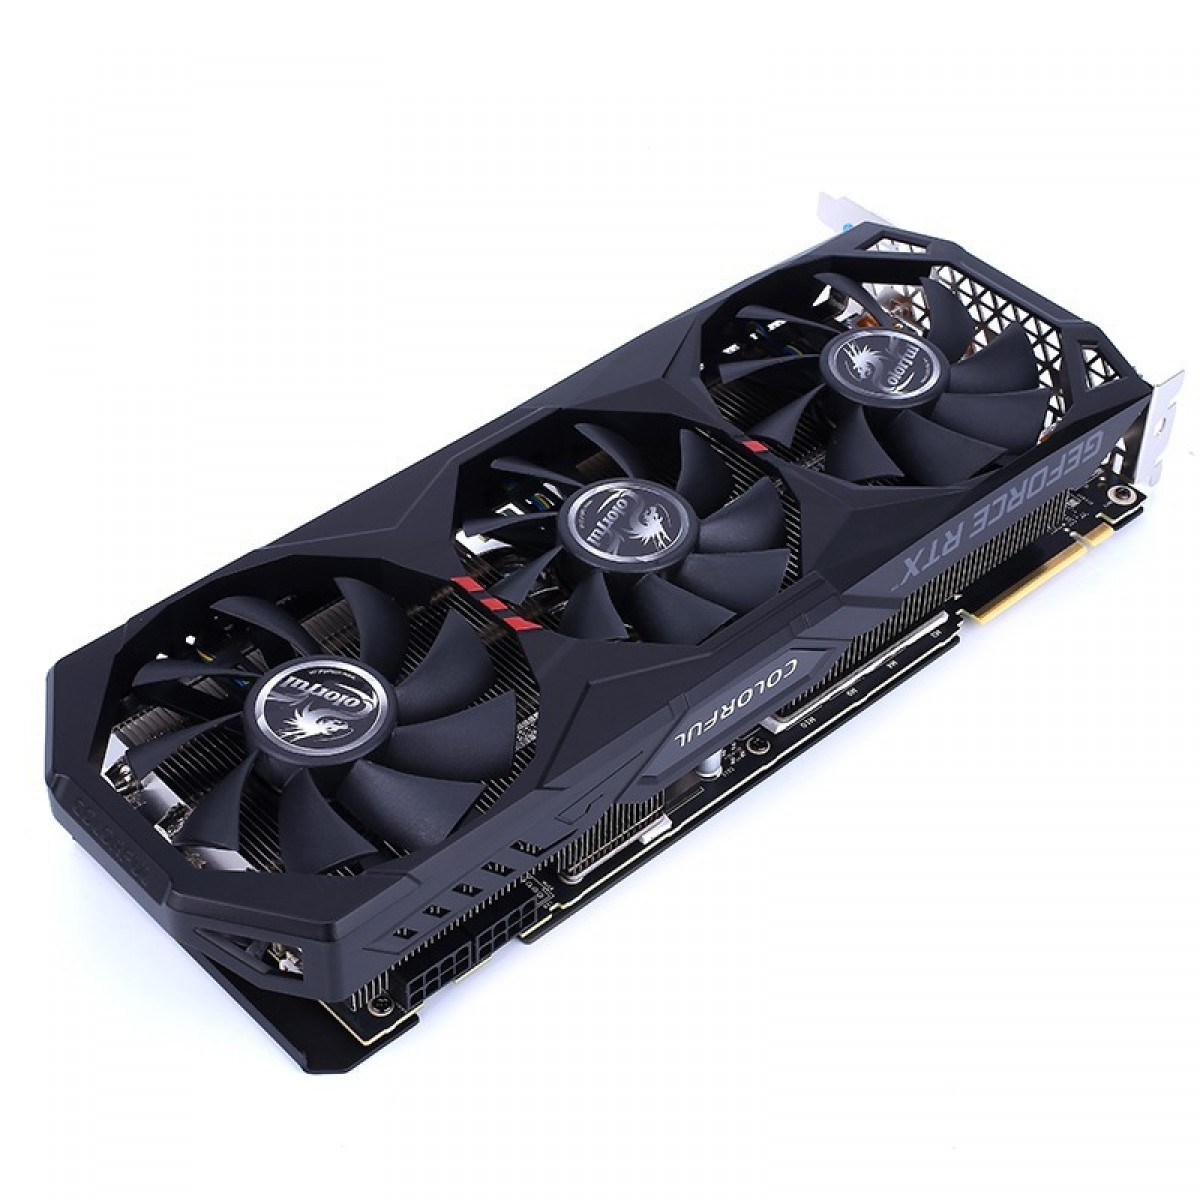 Placa de Vídeo Colorful GeForce RTX 2080 Super 8G-V, 8GB GDDR6, 256Bit